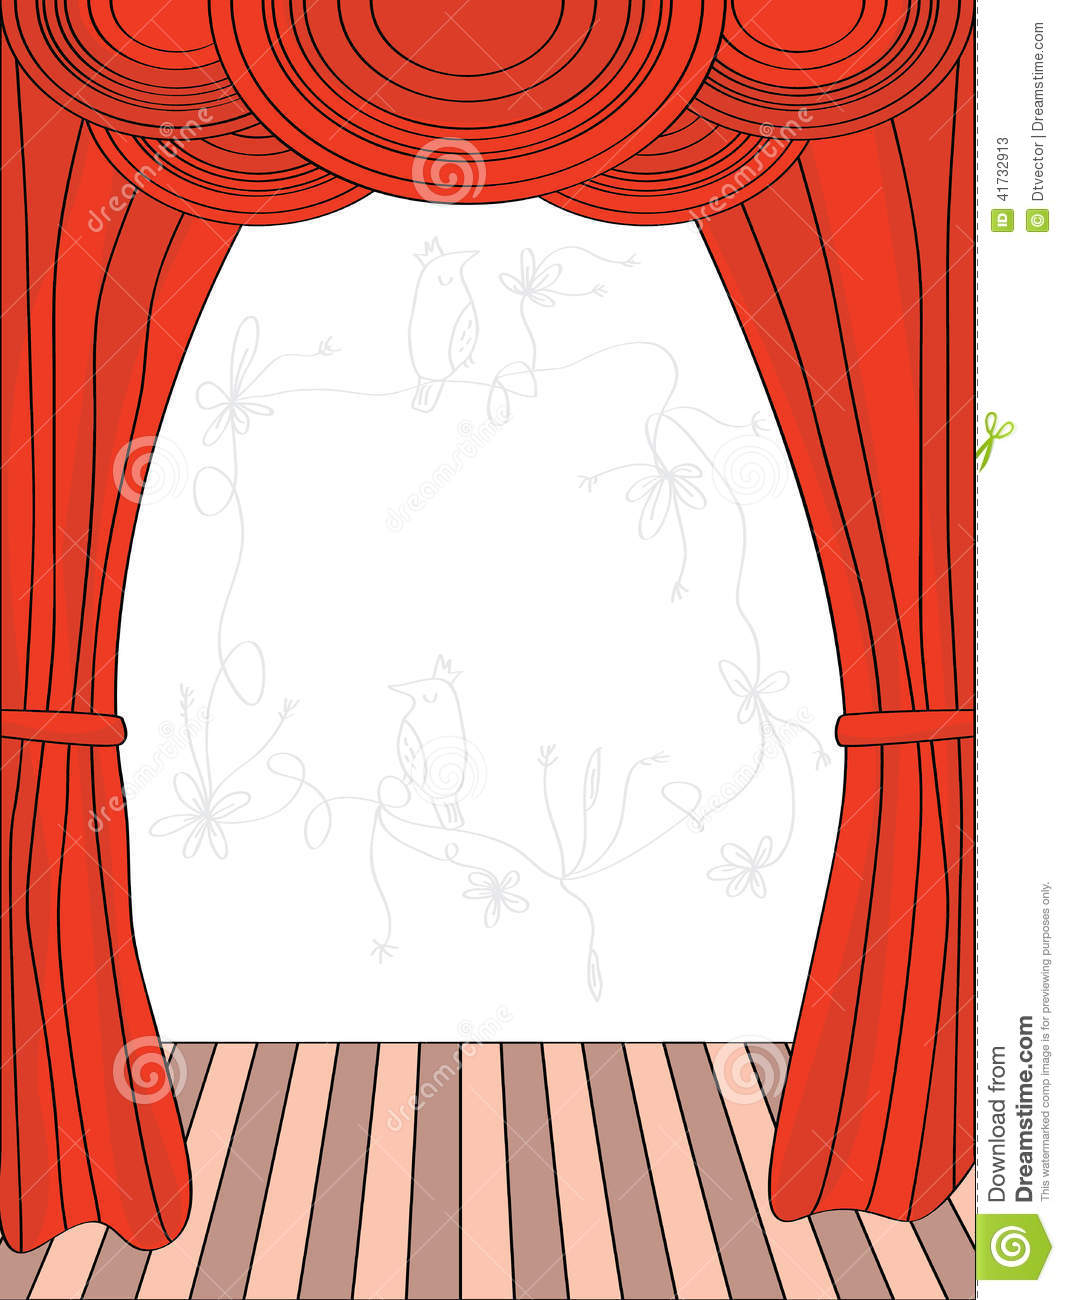 Draw Curtain Stock Vector.